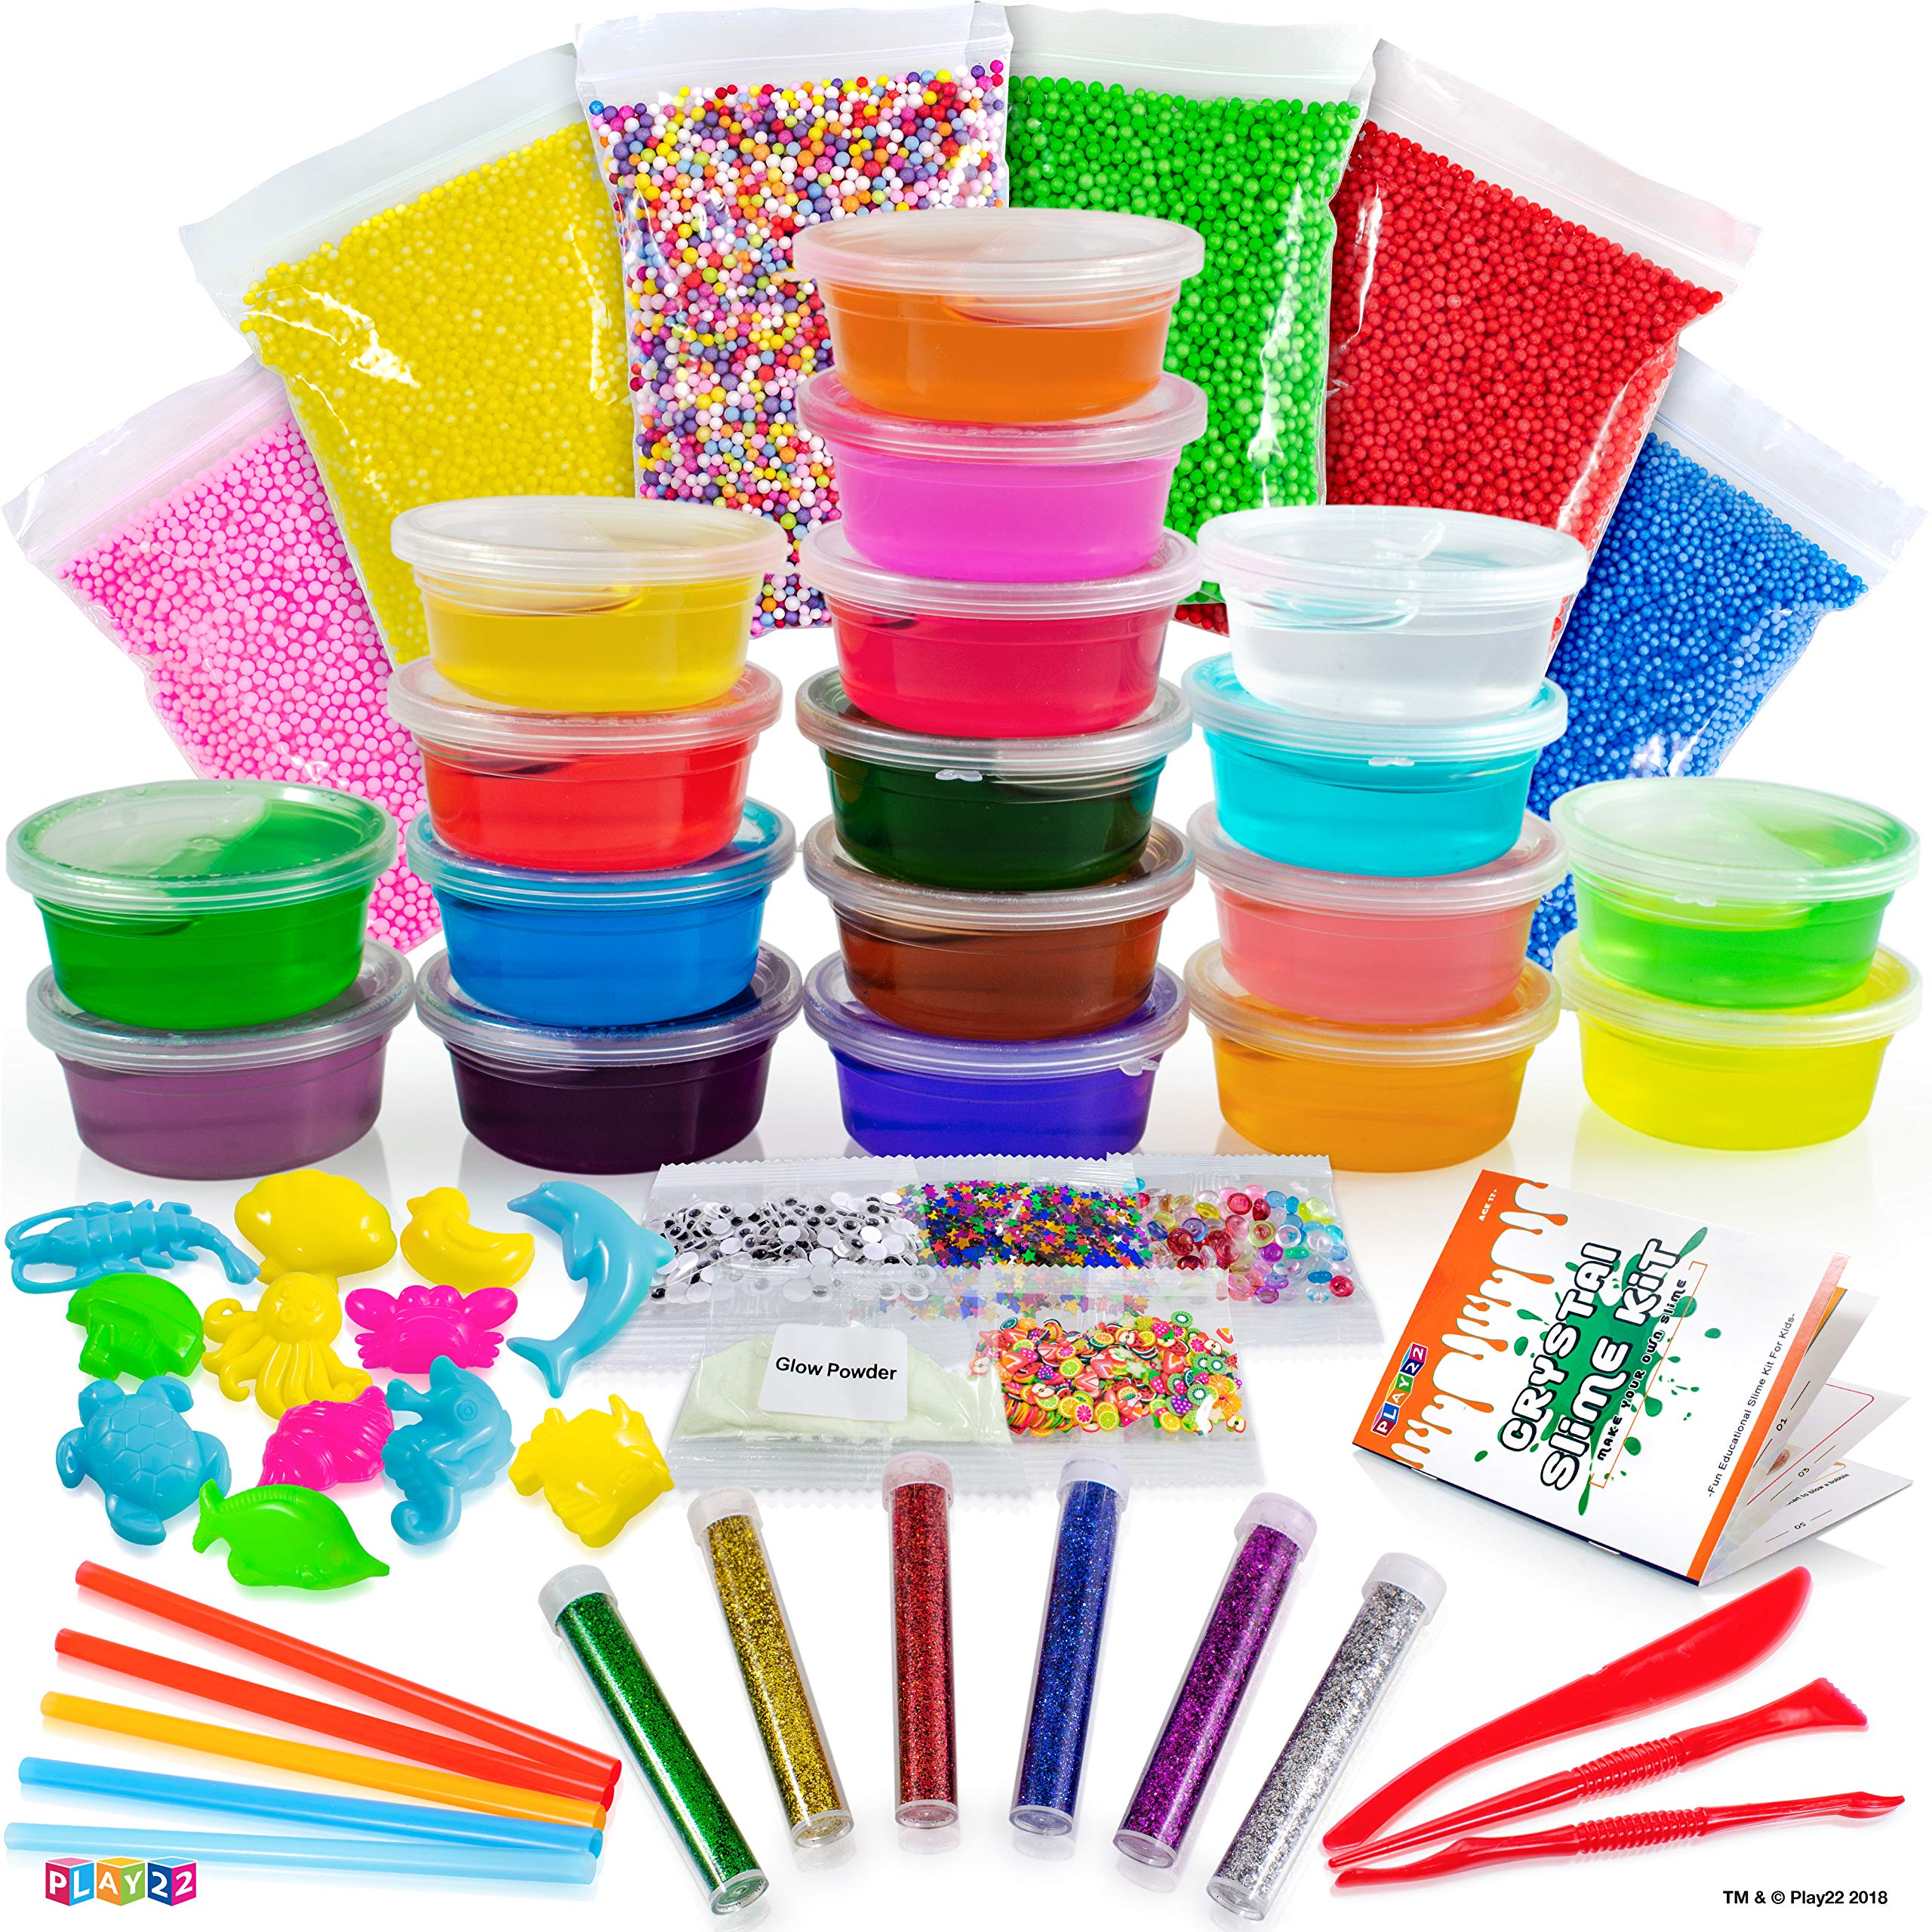 Play22 DIY Slime Kit for Kids - 18 Color Crystal Slime Making Kit, Includes Colorful Foam Balls, Fruit Face, Eyes, Stars, Glitter, Beads, Molds, Straws, Glow in Dark Powder and Much More - Original